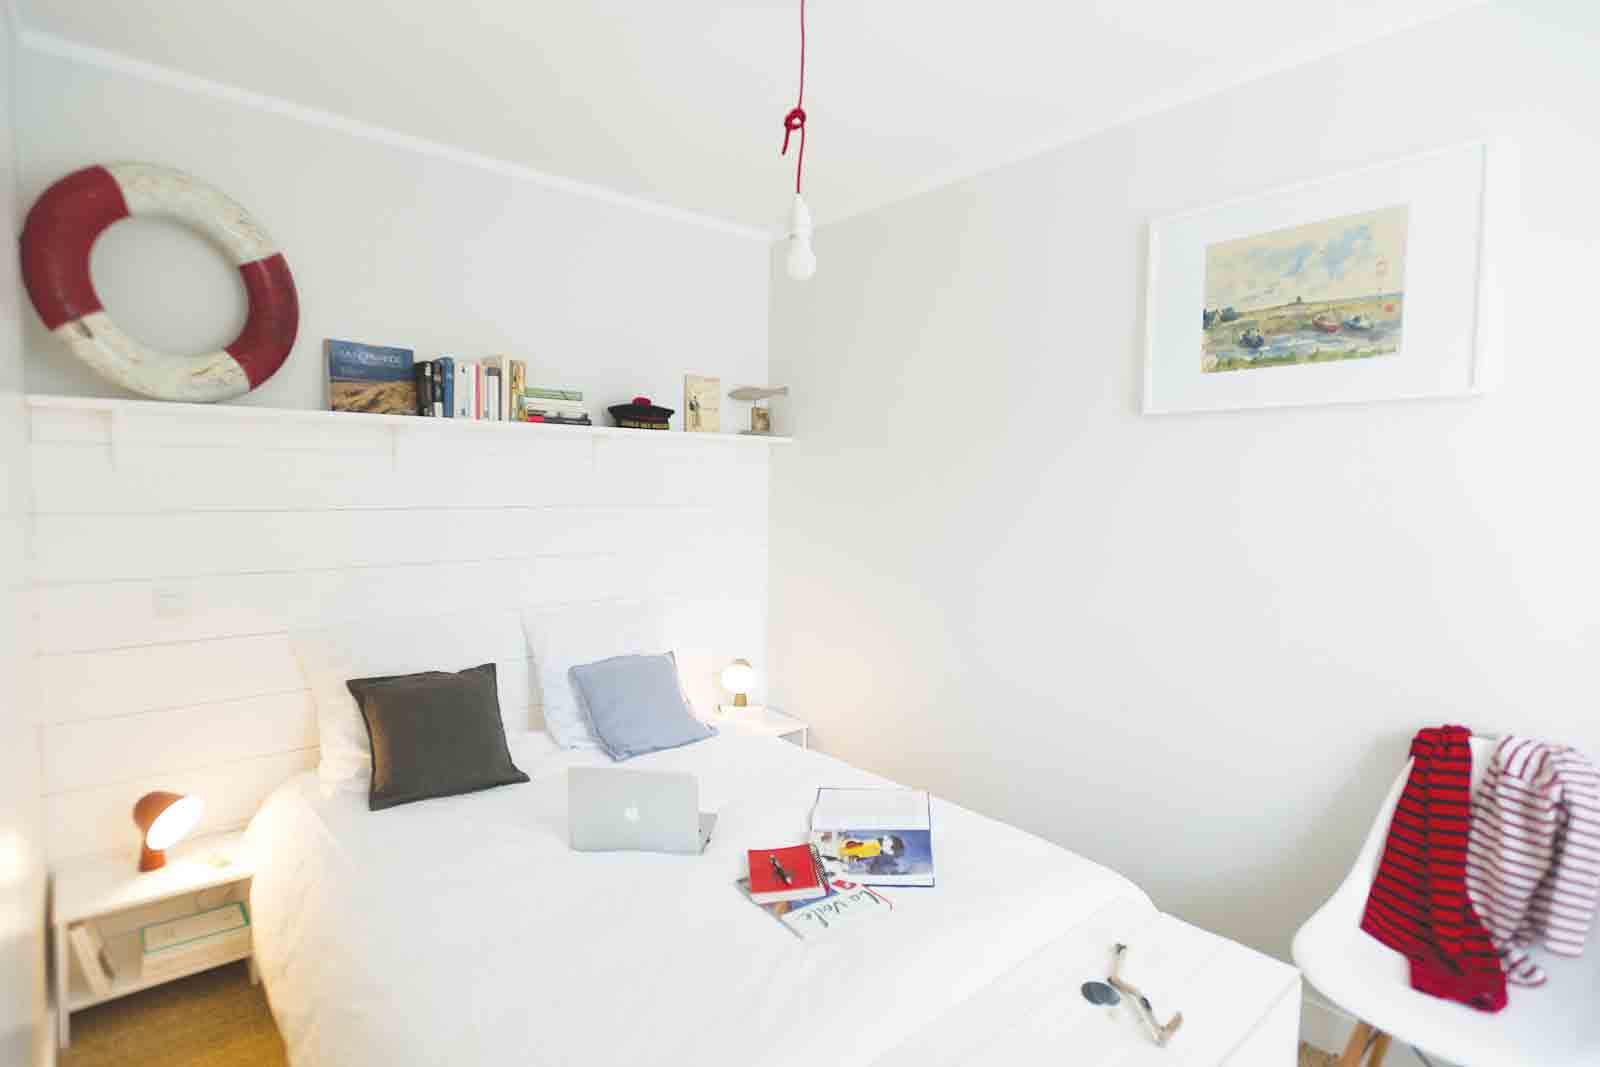 Sailor's Apartment  - Port-en-Bessin, Normandy, France | vacation homes for rent